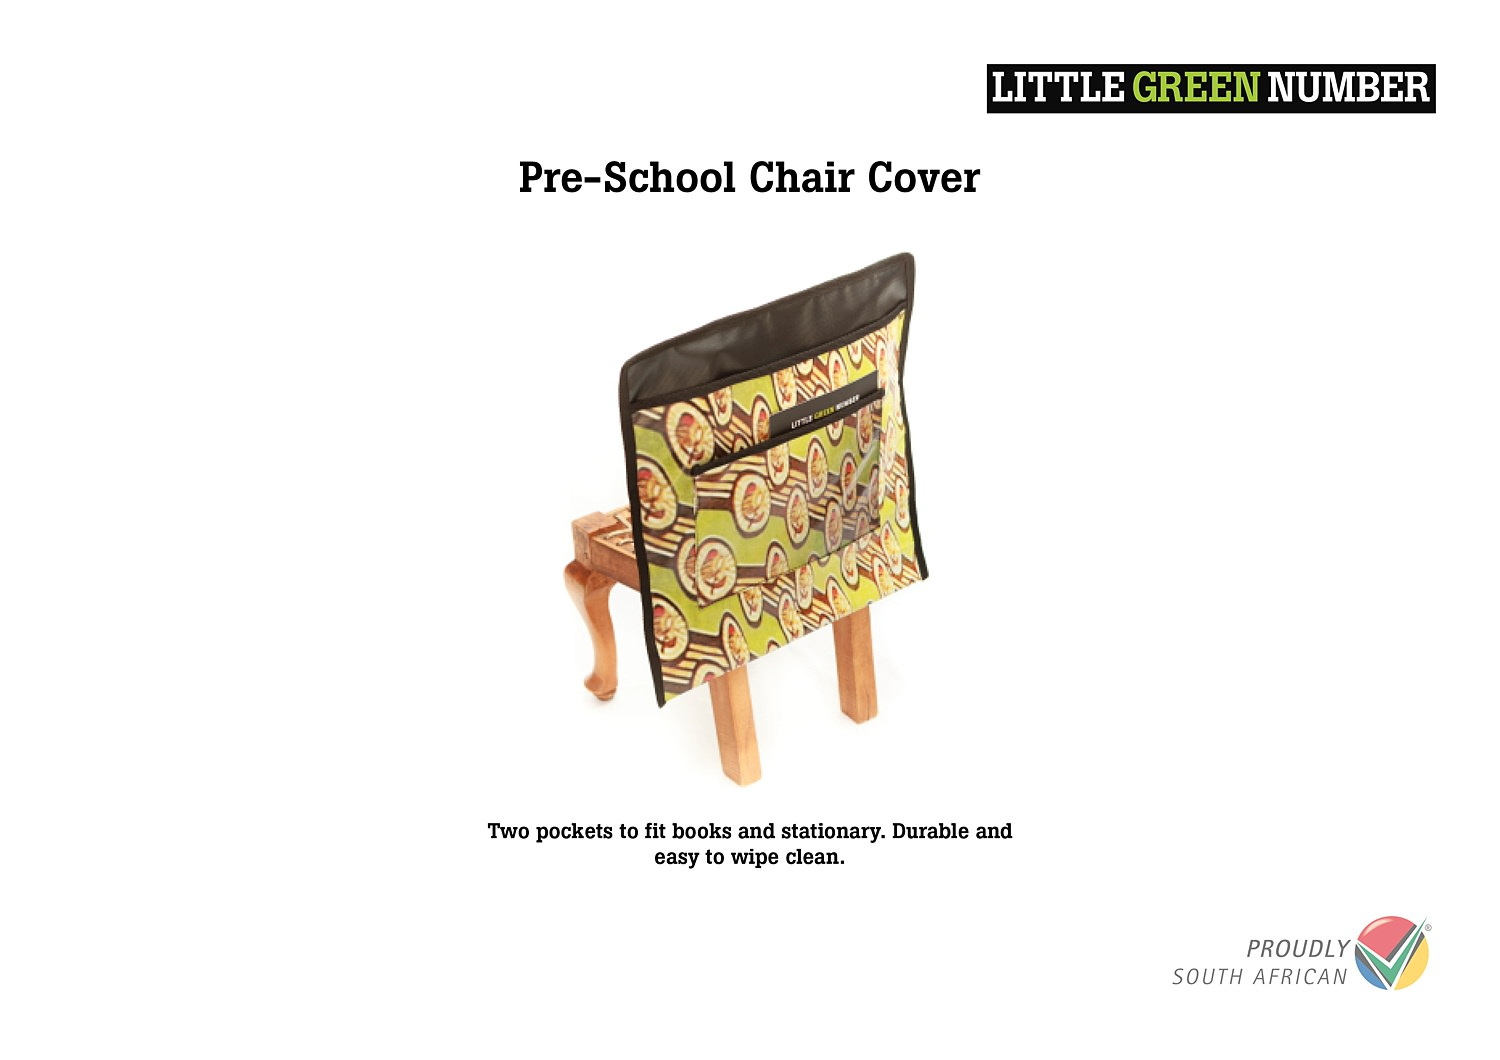 Little Green Number Catalogue Buy1give1 upcycling billboards gauteng32.jpg